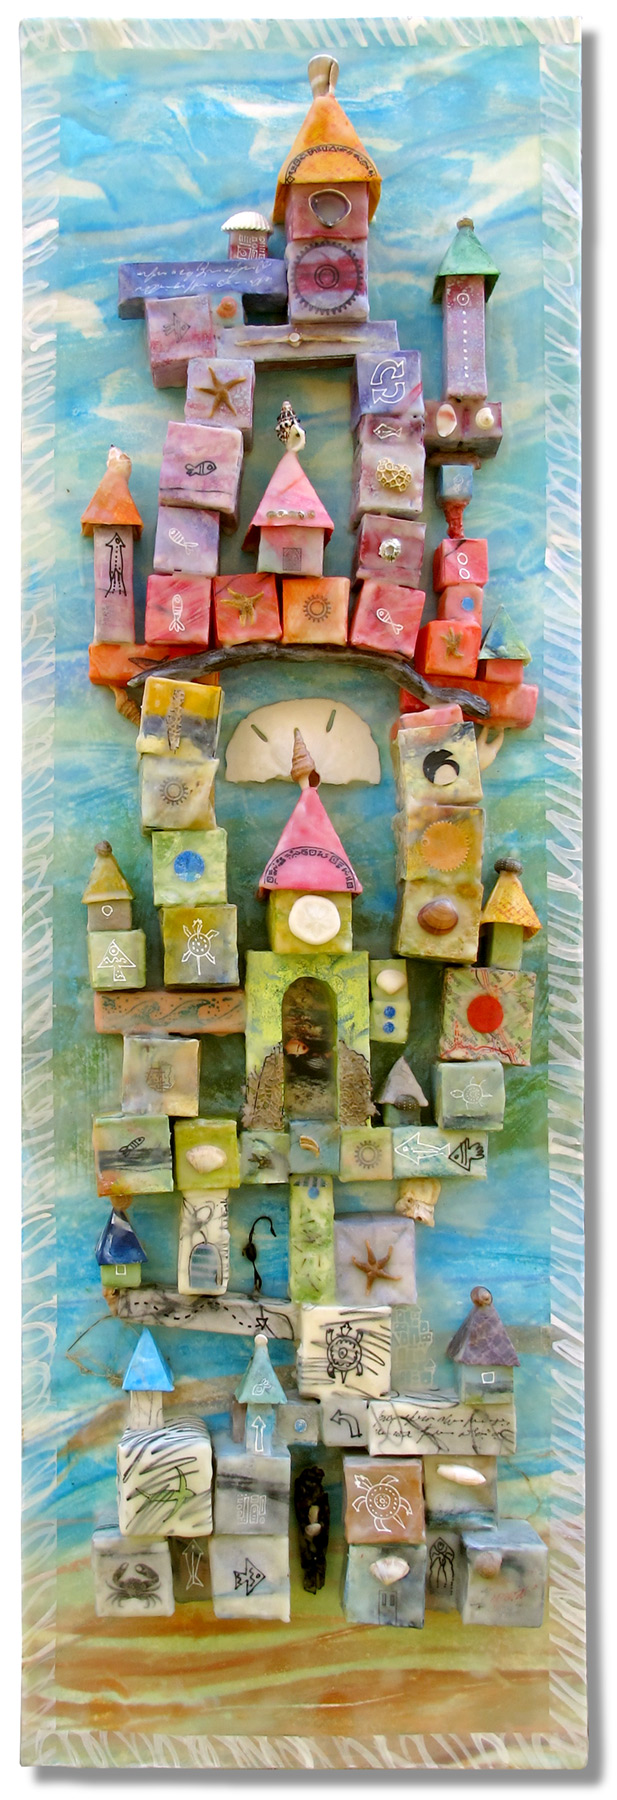 Jeanne Borofsky Sand Castle, Encaustic and origami on panel , 20 x 15 x 4 inches